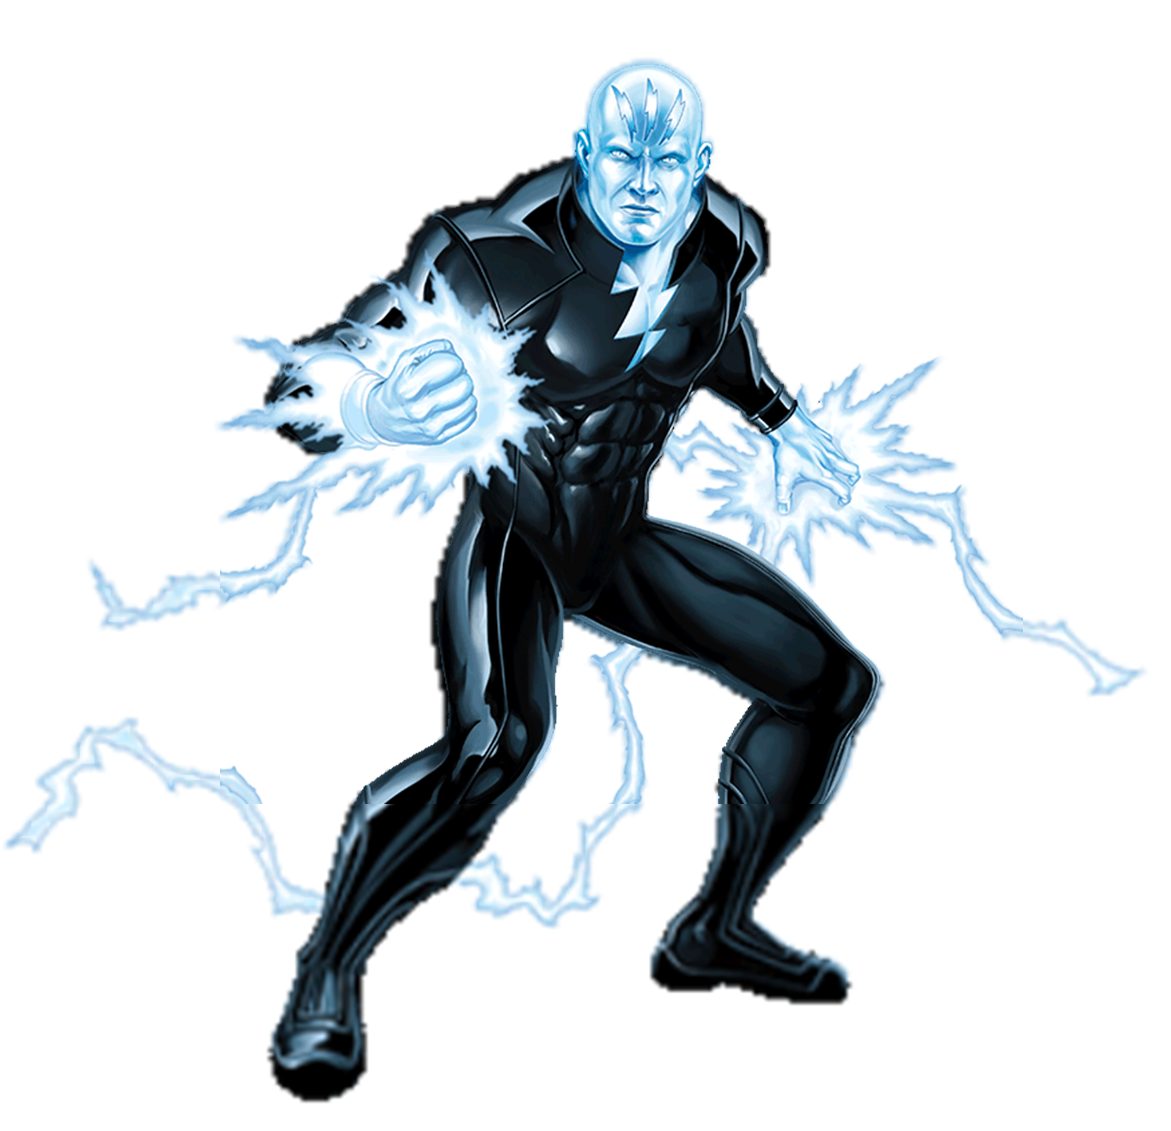 Image - Electro 2.0.png - Ultimate Spider-Man Animated Series Wiki